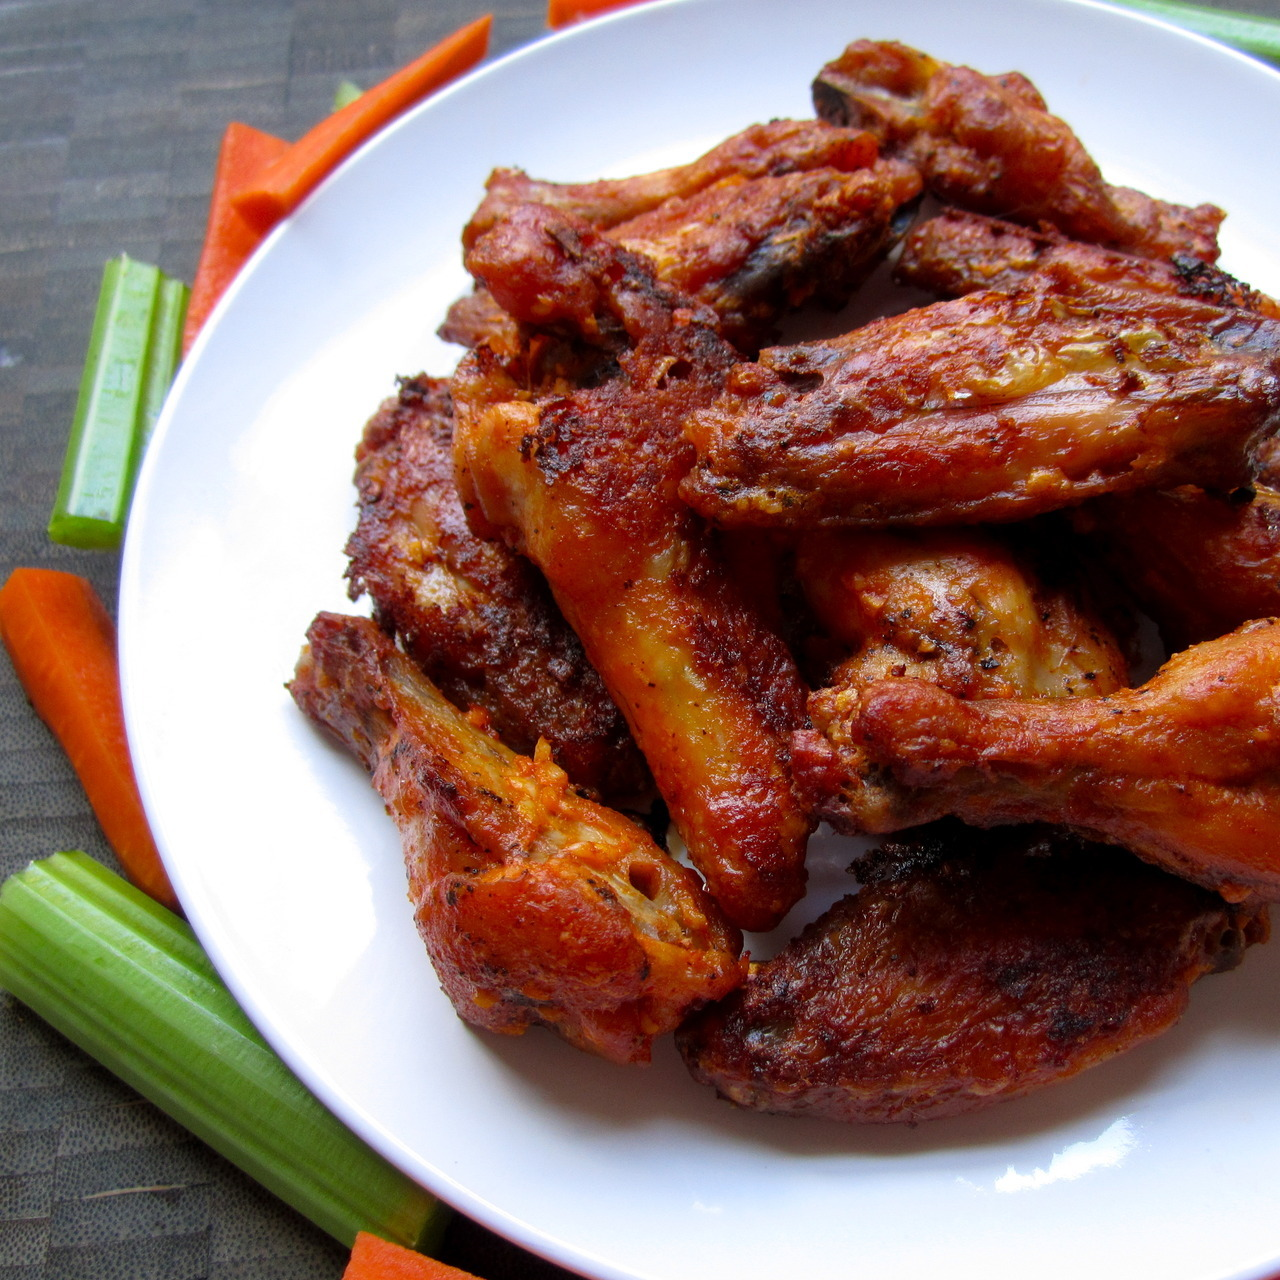 hot wings hell yeah! no frying or steaming needed, just pop them in the oven. they are super delicious and fool proof. and it's nearly football season if you're in to that sort of thing, so this would be a good time to make some, you football person you. full recipe here!